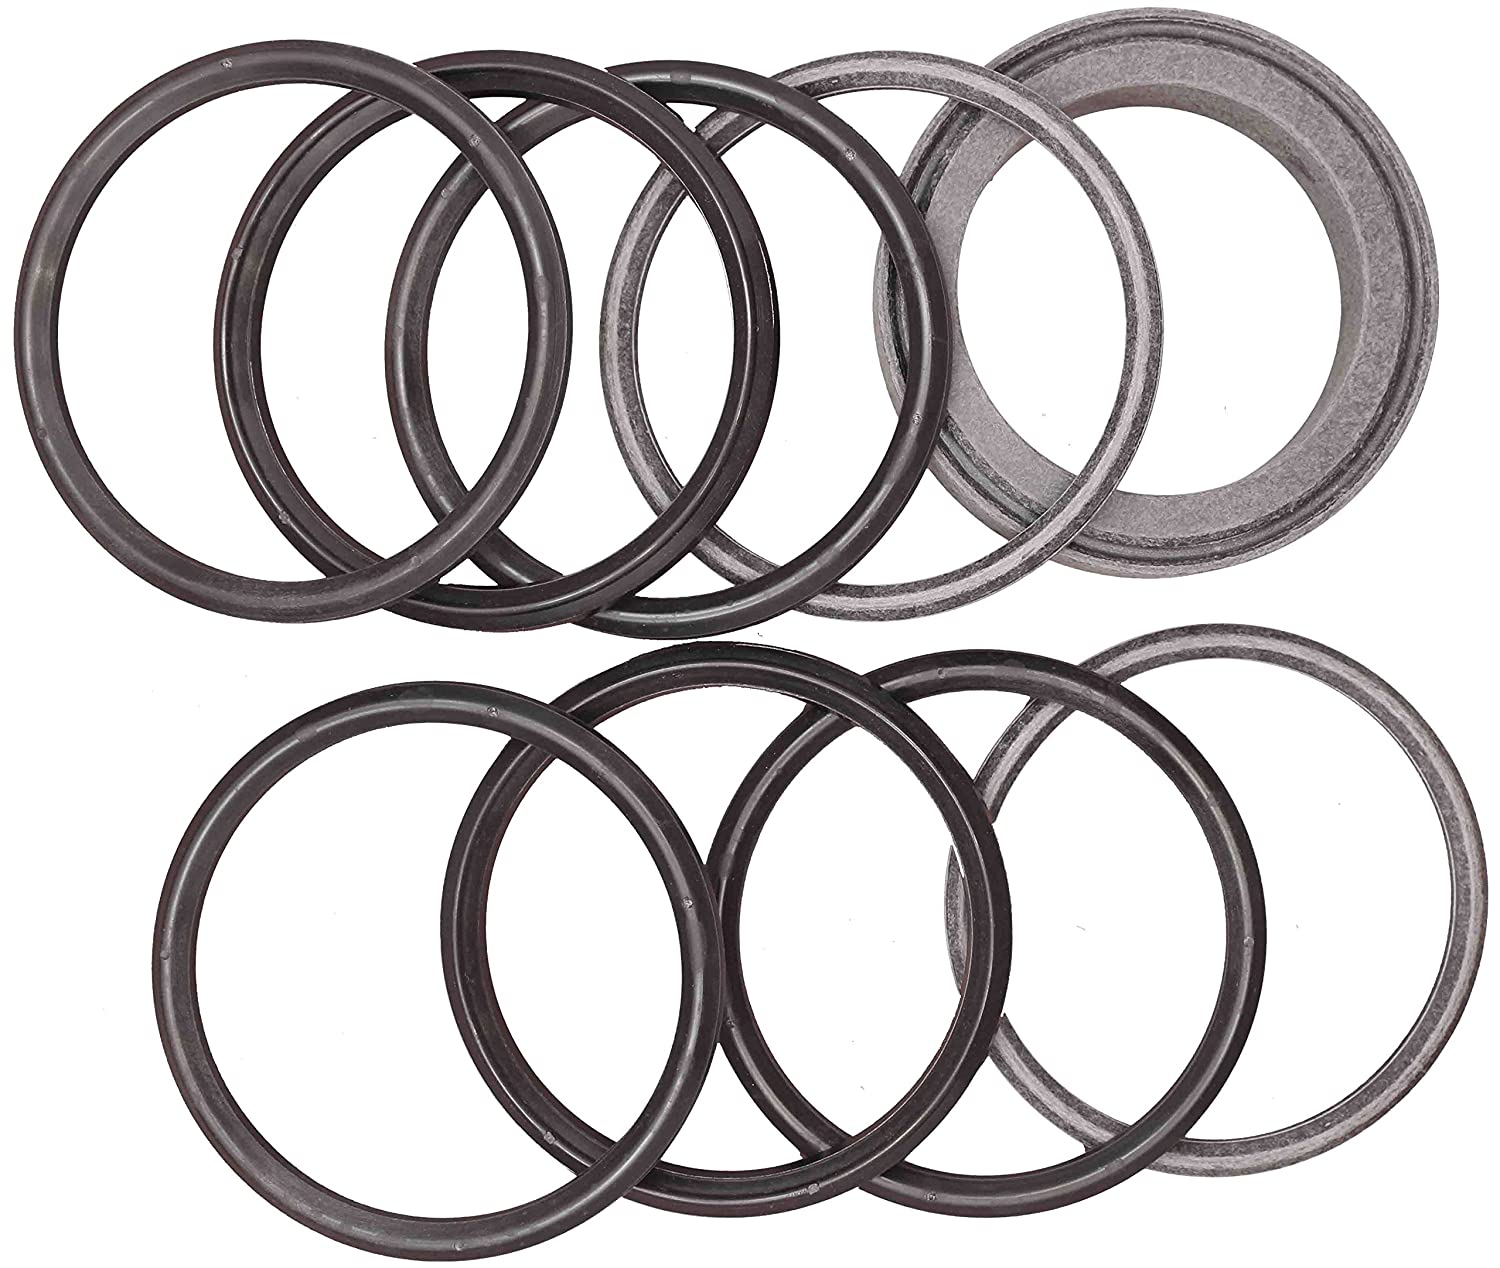 CASE G33237 HYDRAULIC CYLINDER SEAL KIT (PACKING ASSEMBLY)